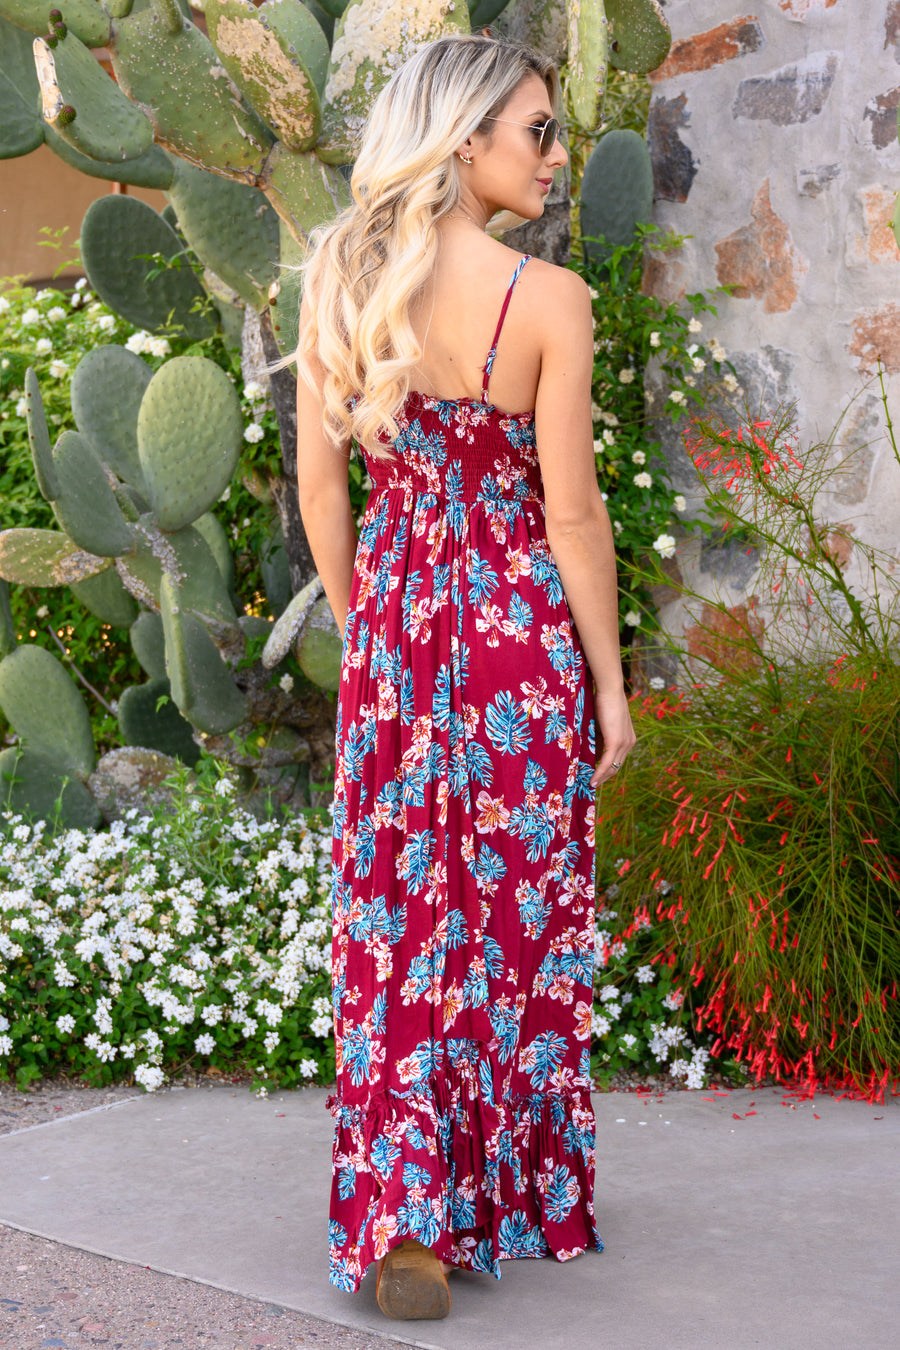 Take My Breath Away Maxi Dress - Wine women's beautiful floral print long dress, Closet Candy Boutique 1